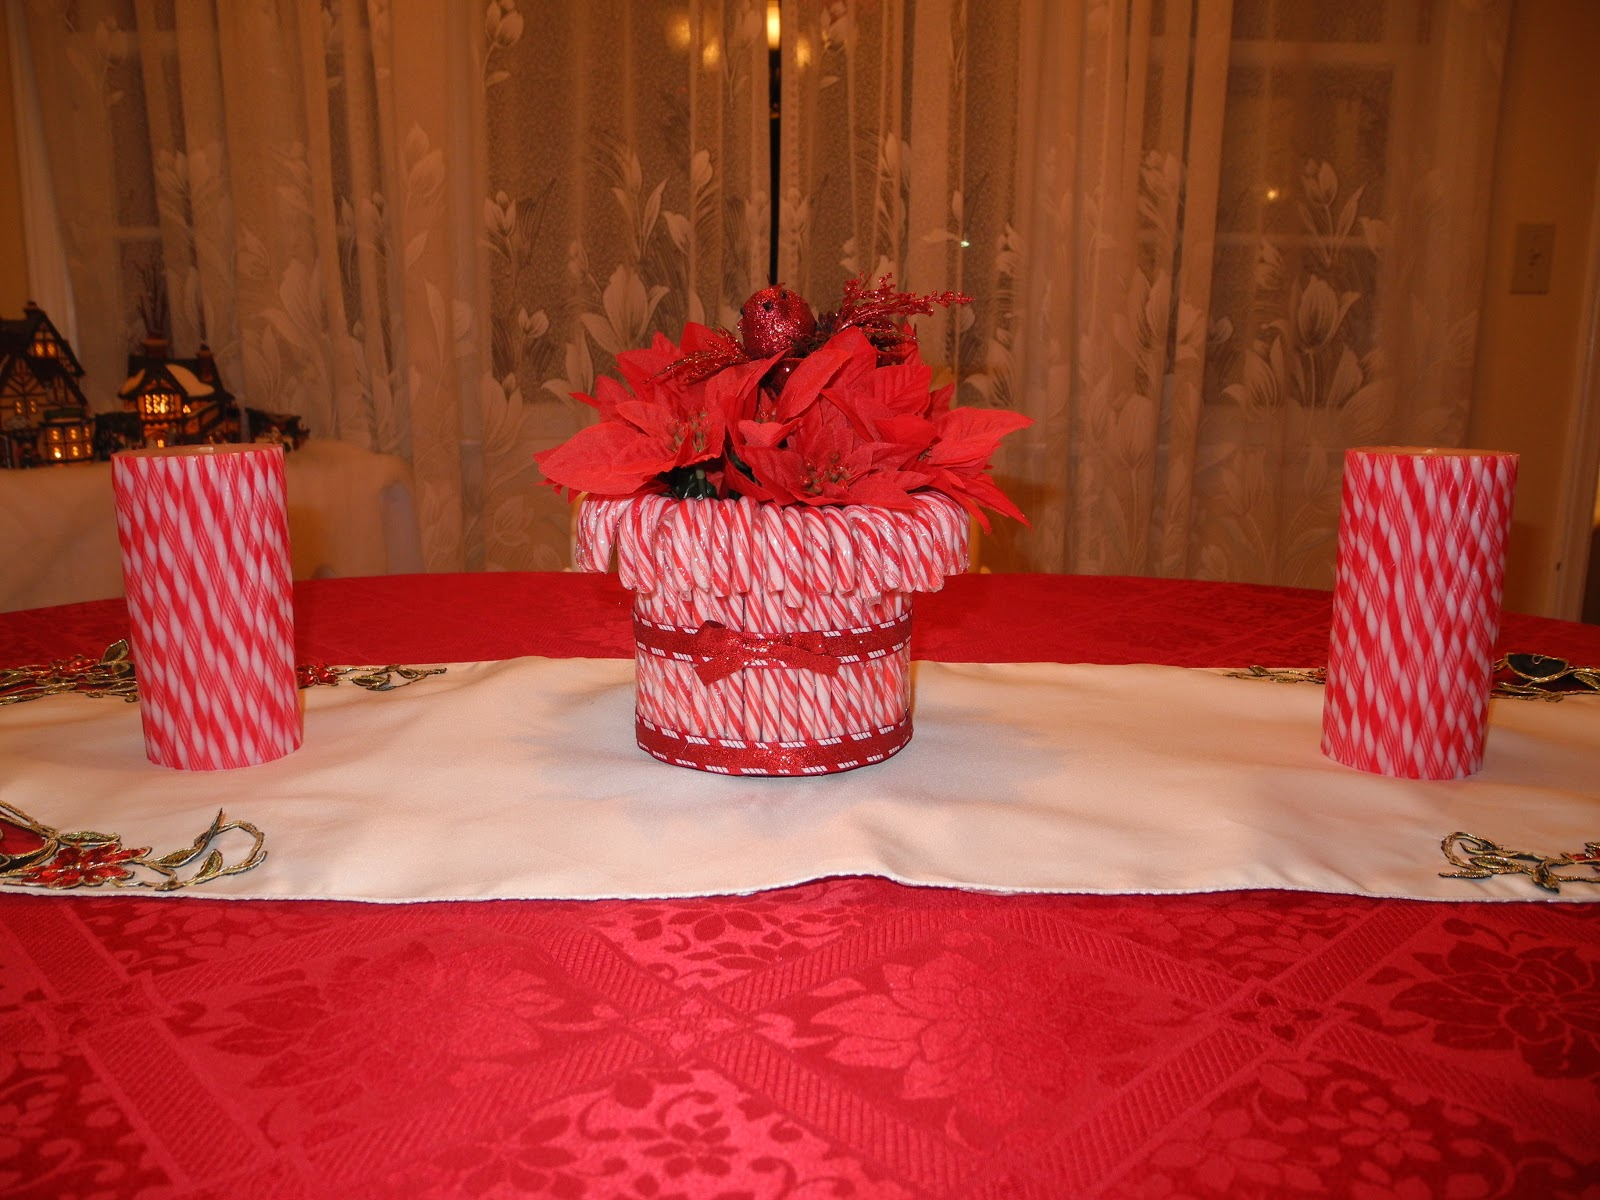 Candy cane centerpiece for Candy cane holder candle centerpiece